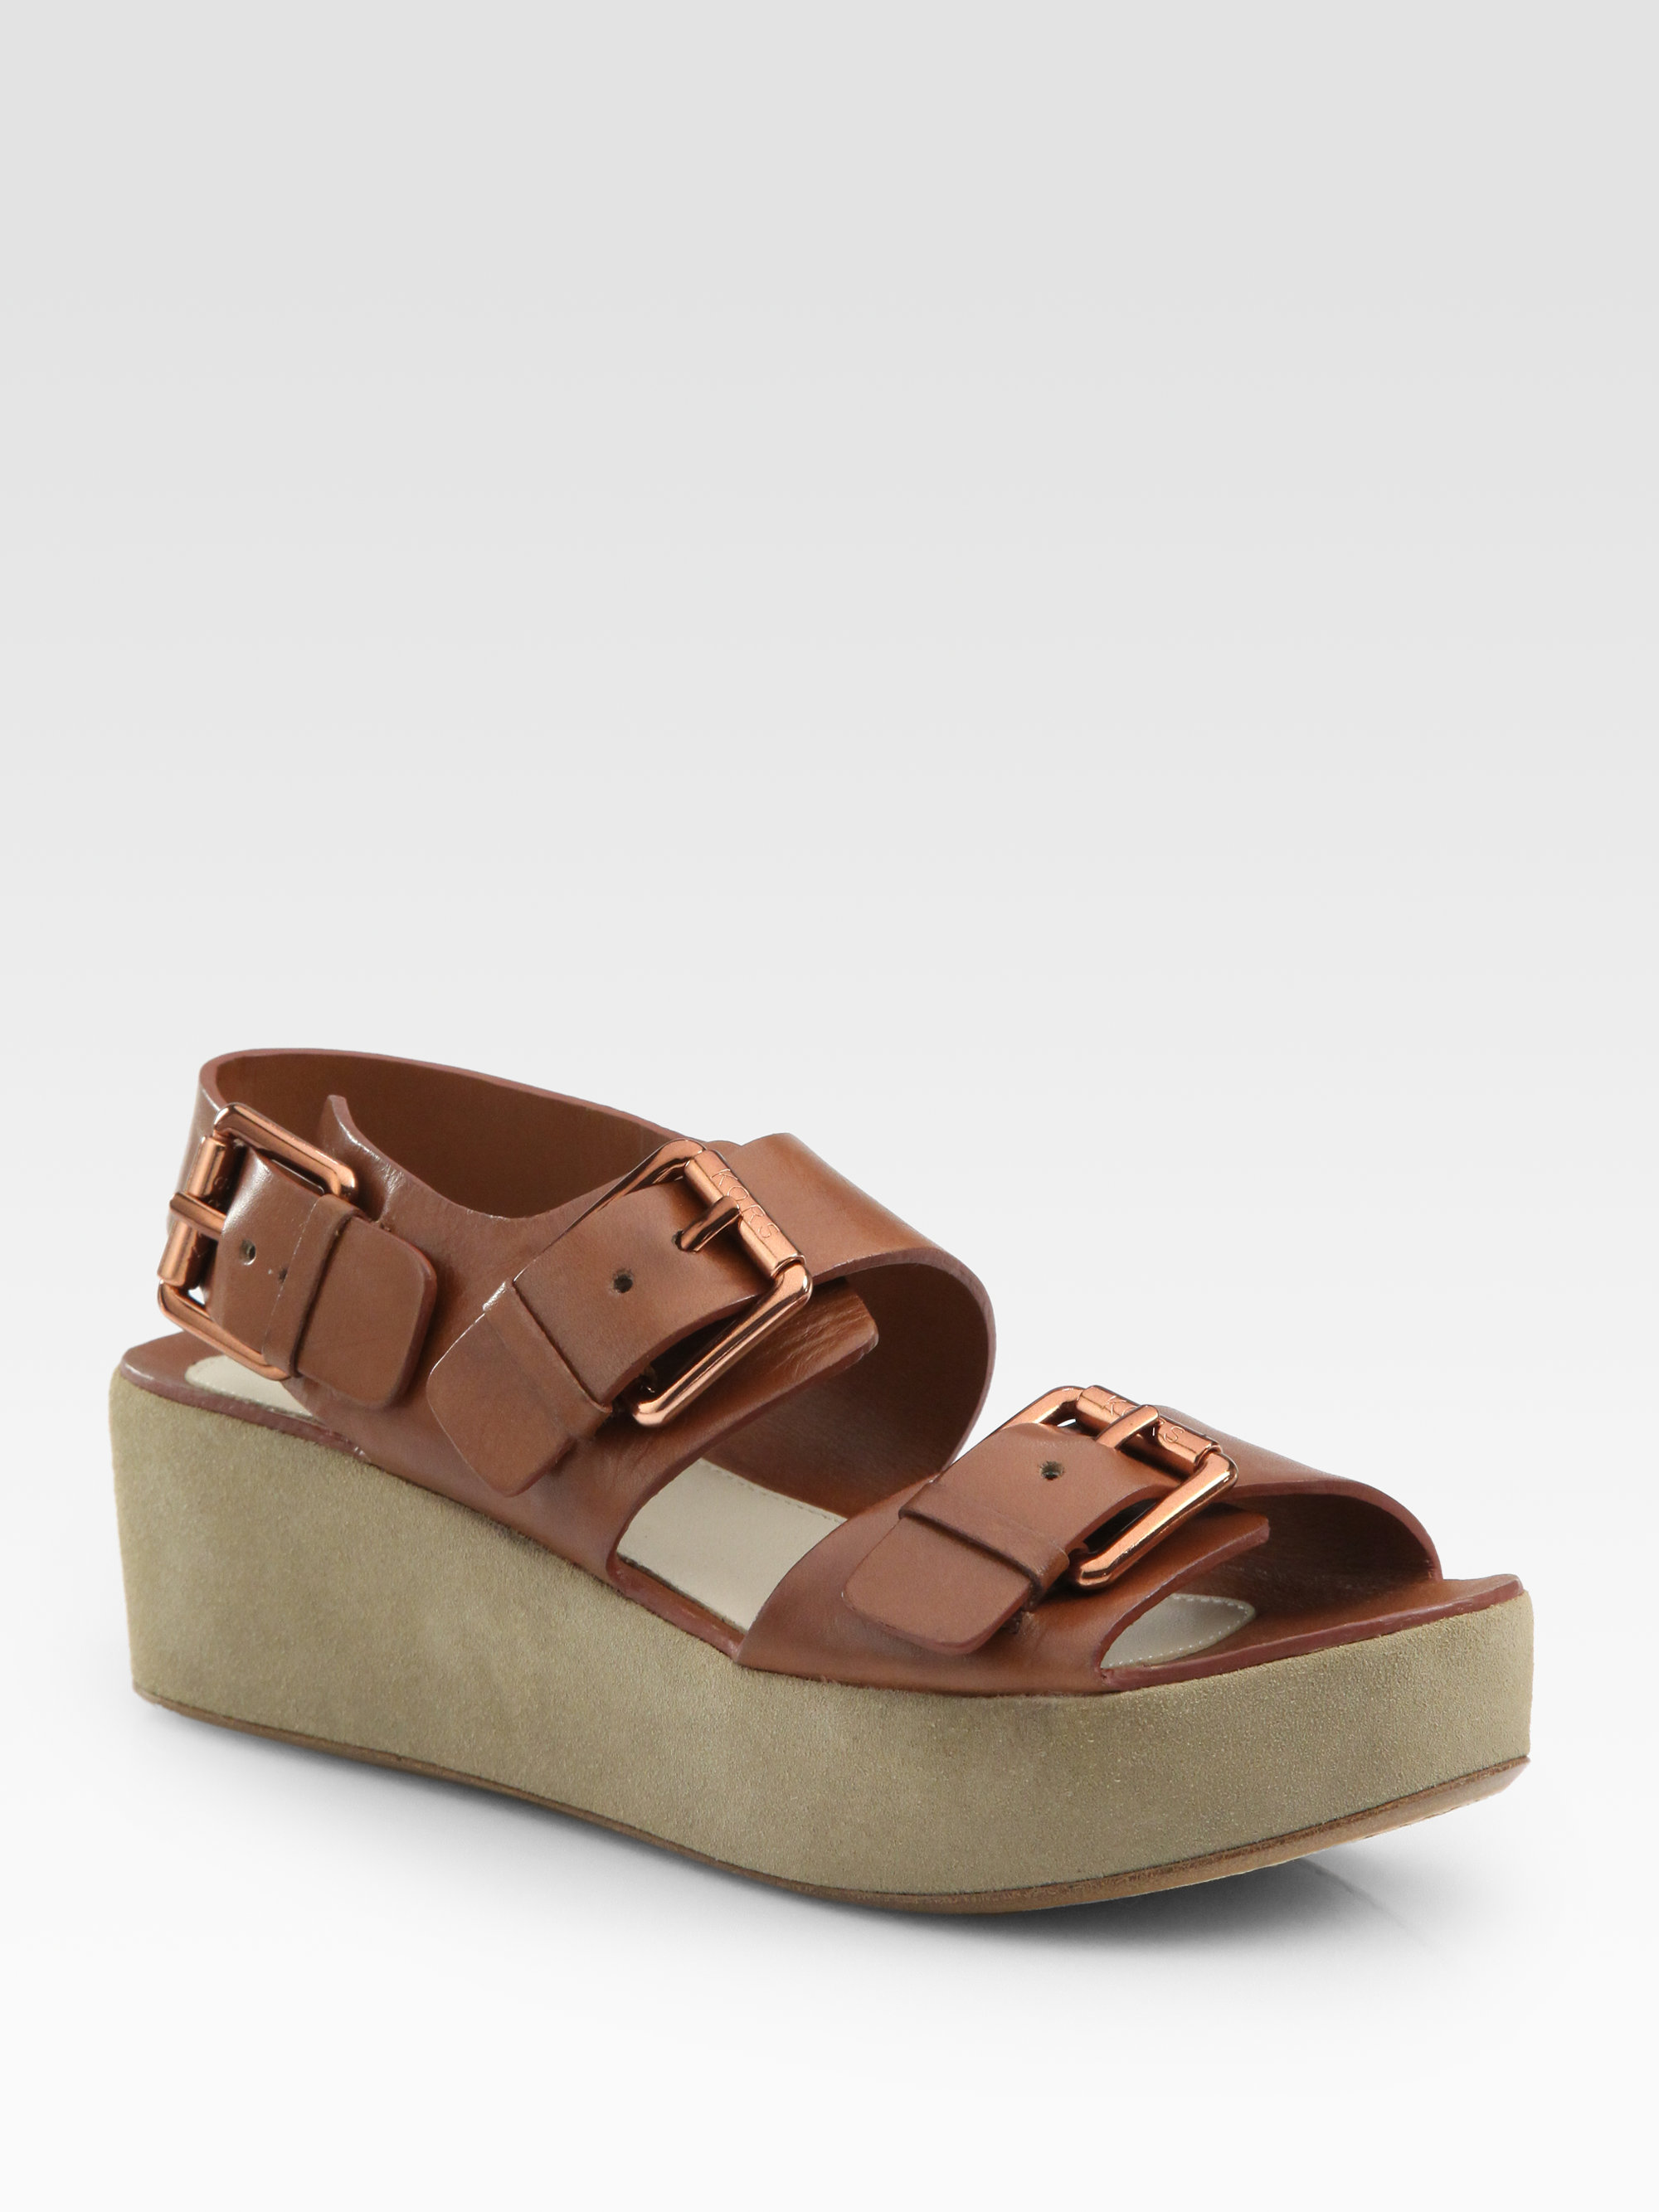 Kors By Michael Kors Zoe Leather And Suede Platform Buckle